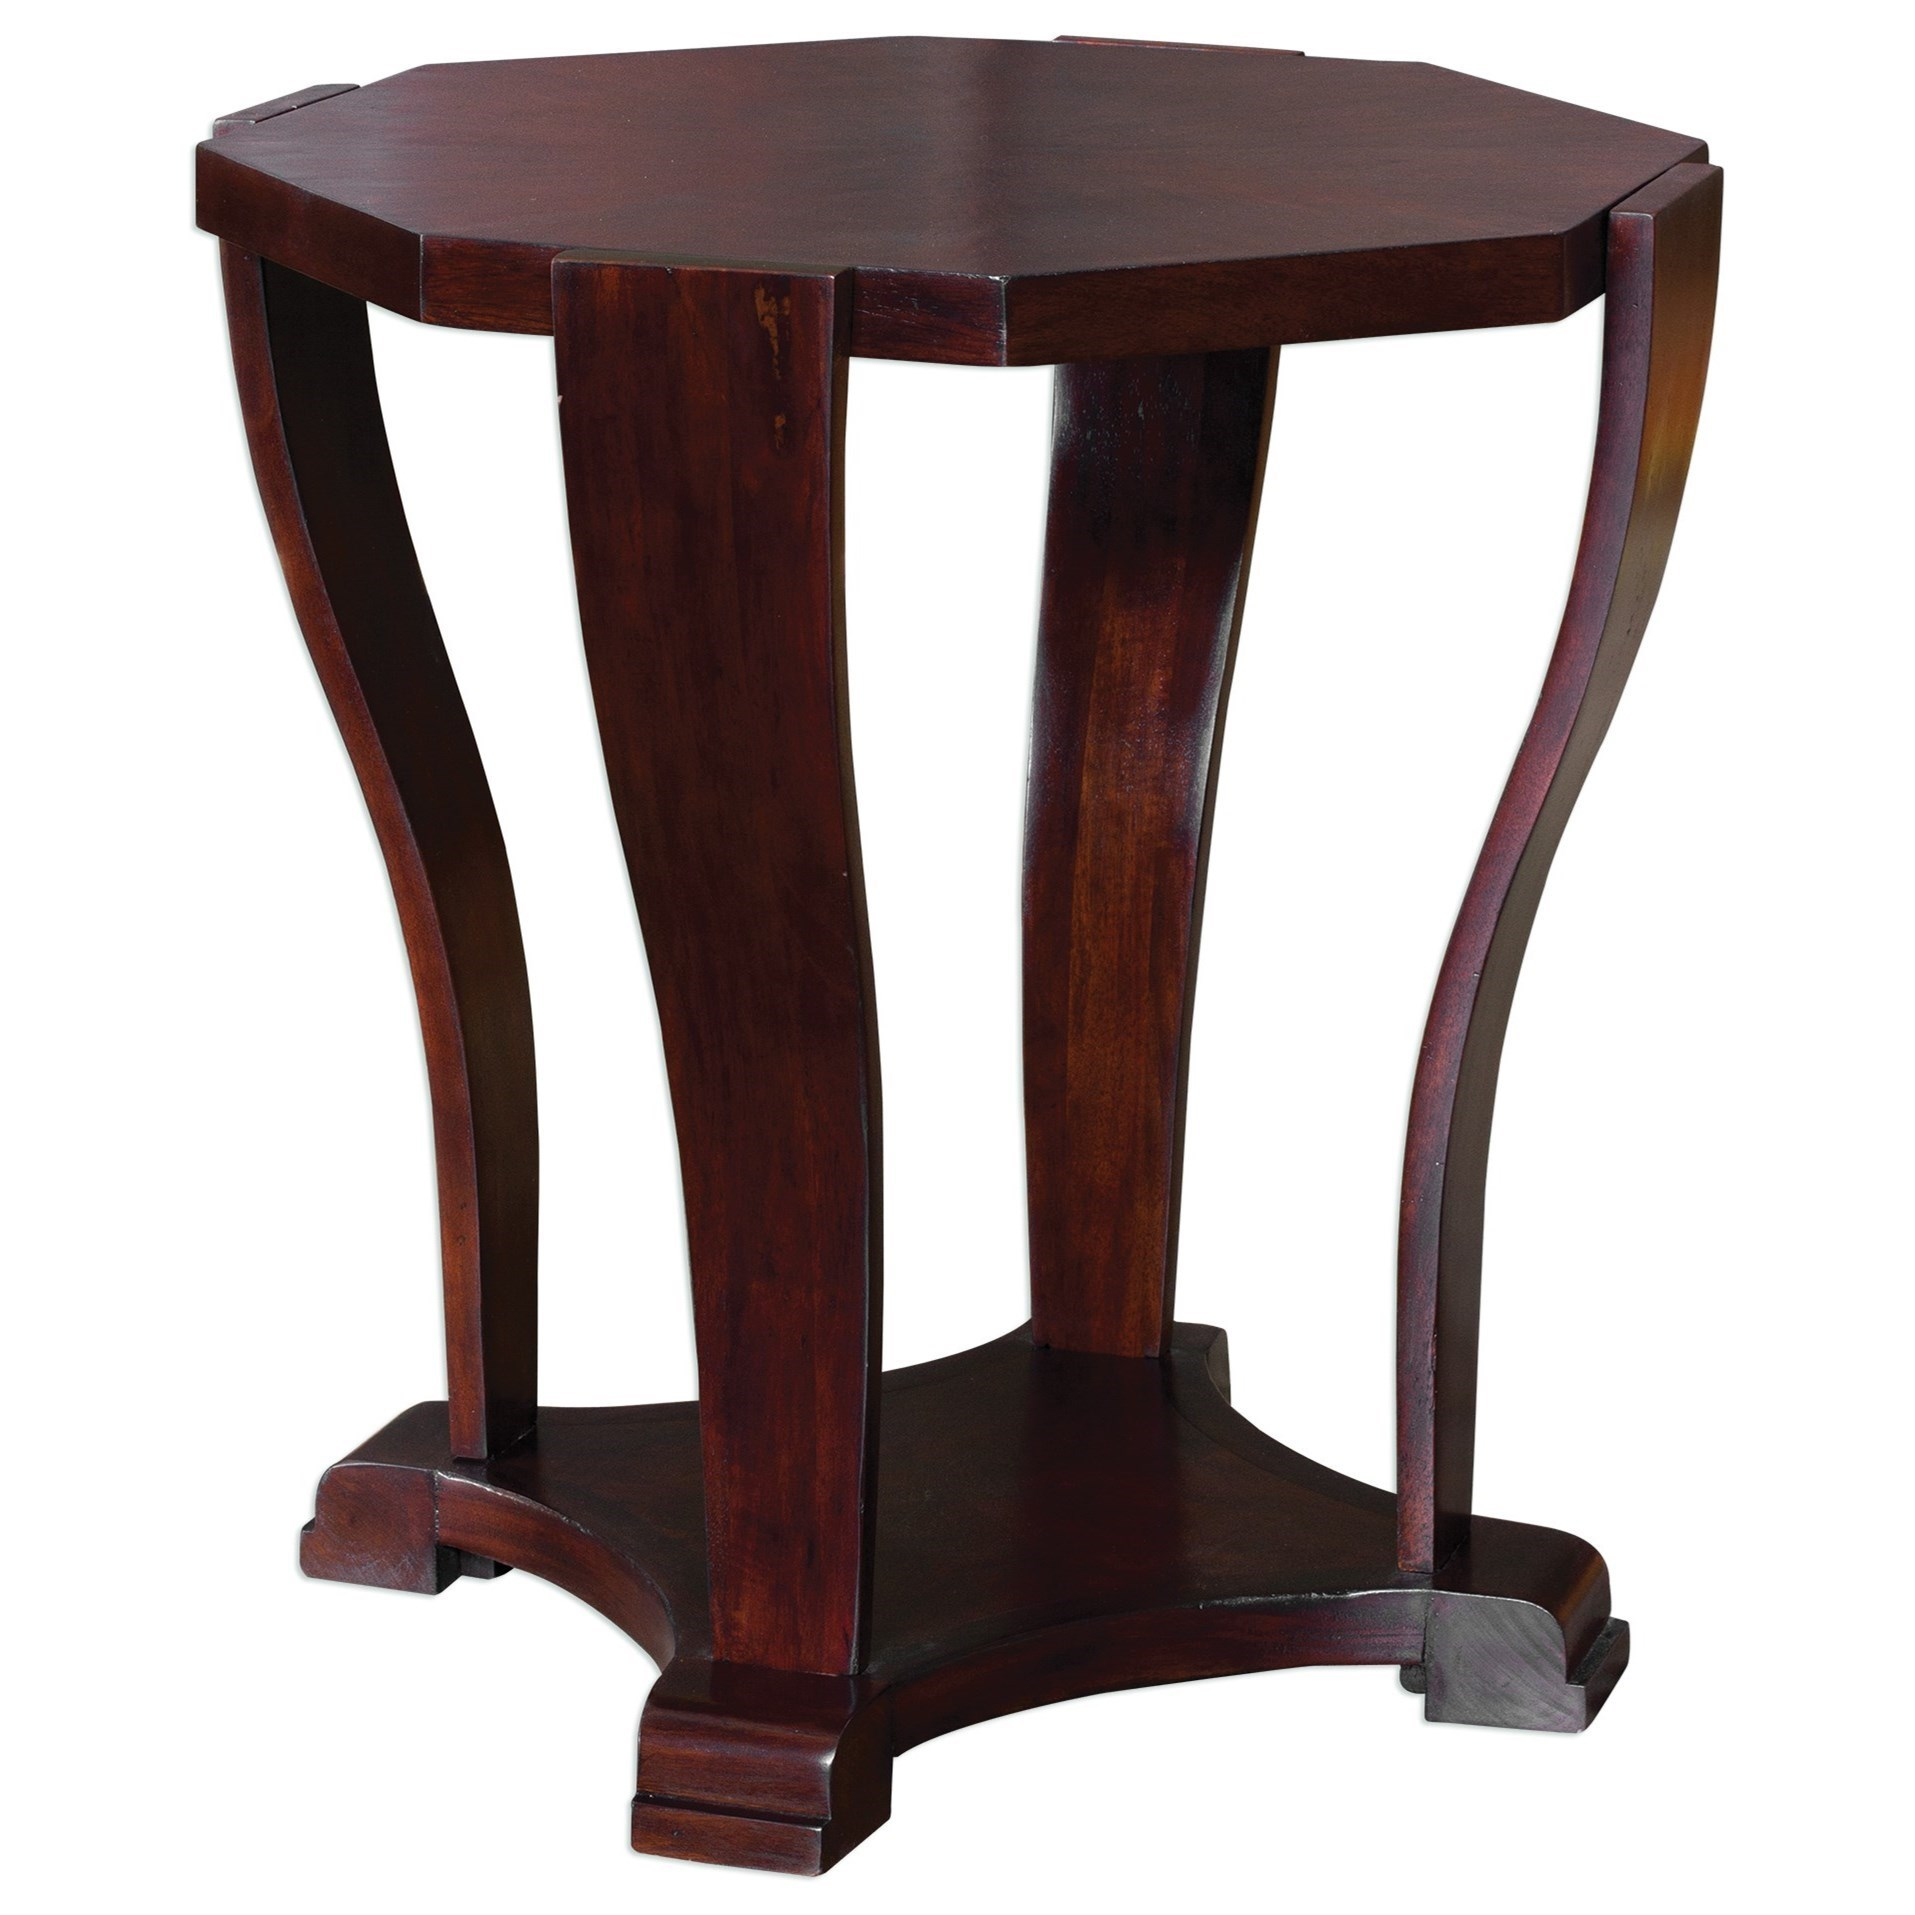 Medium image of uttermost accent furniture pallavi accent table